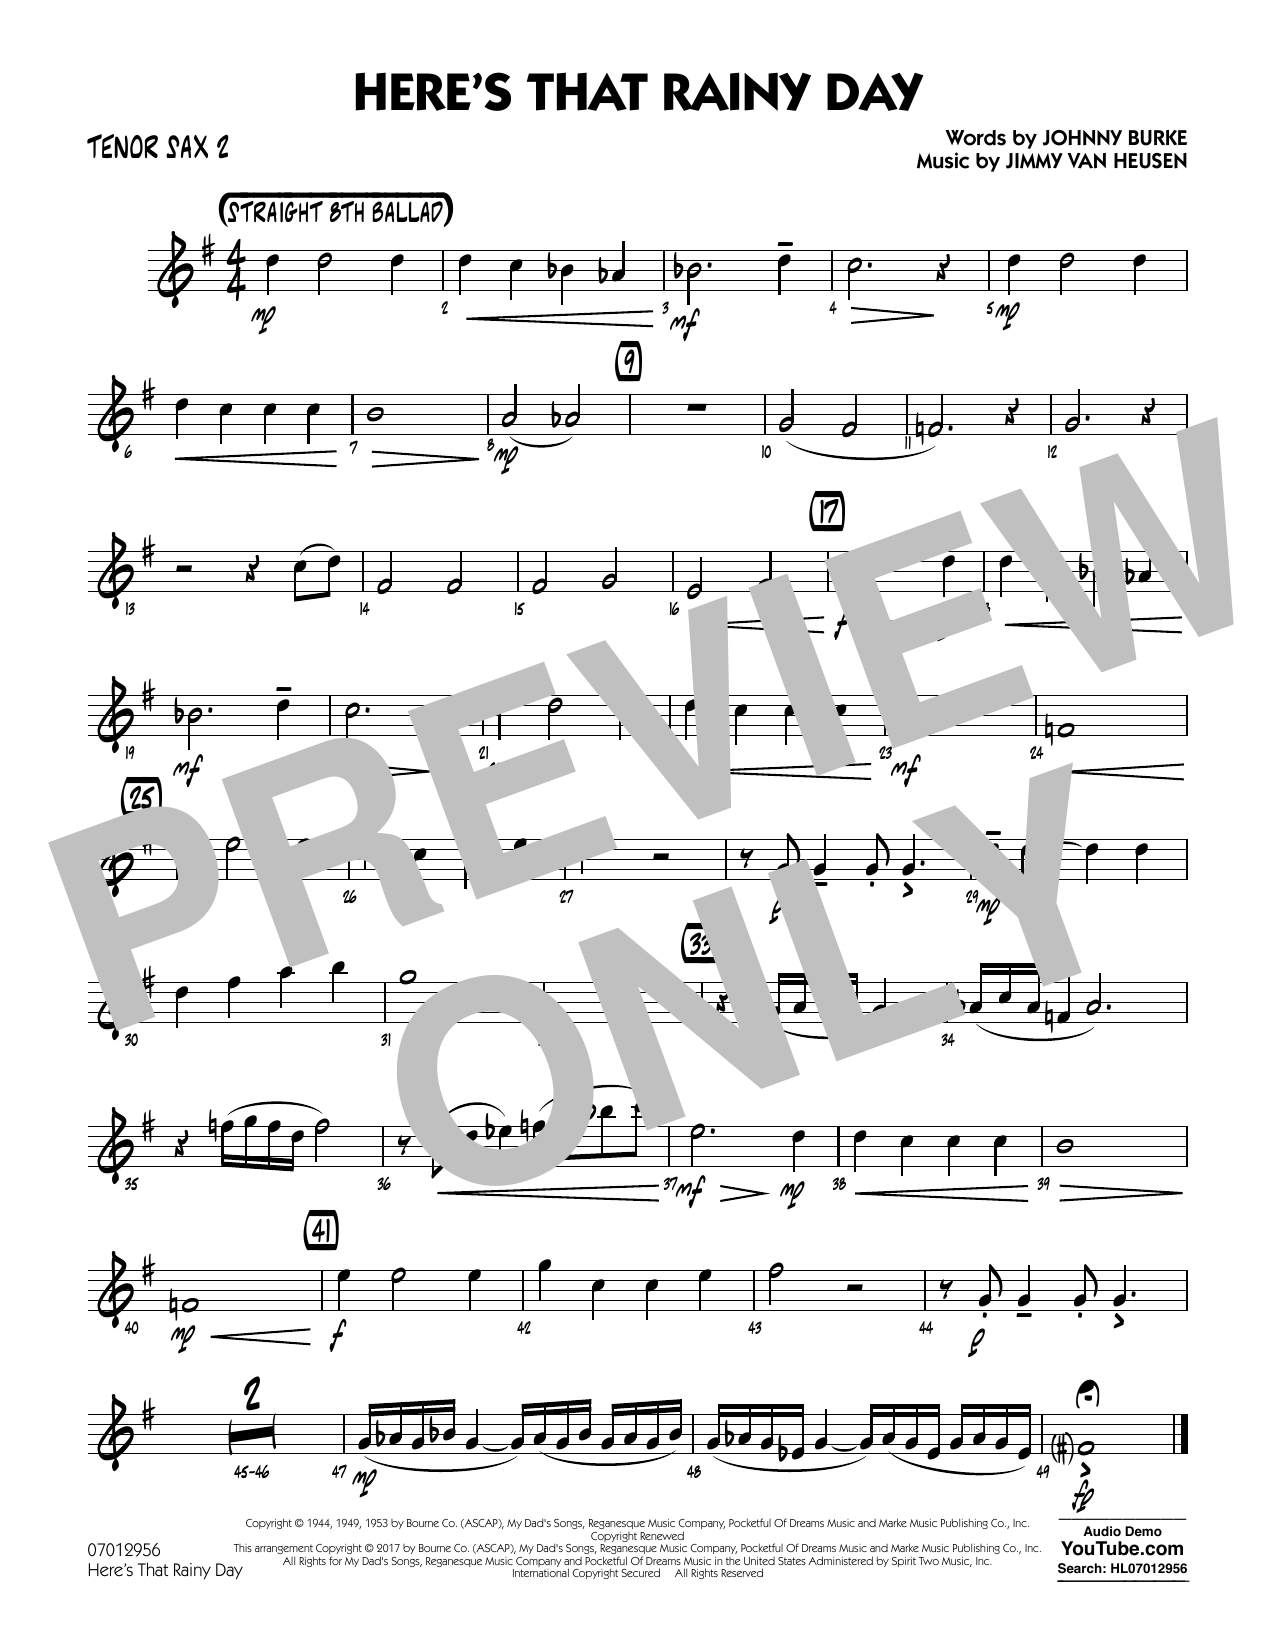 Rick Stitzel Here's That Rainy Day - Tenor Sax 2 sheet music notes and chords. Download Printable PDF.